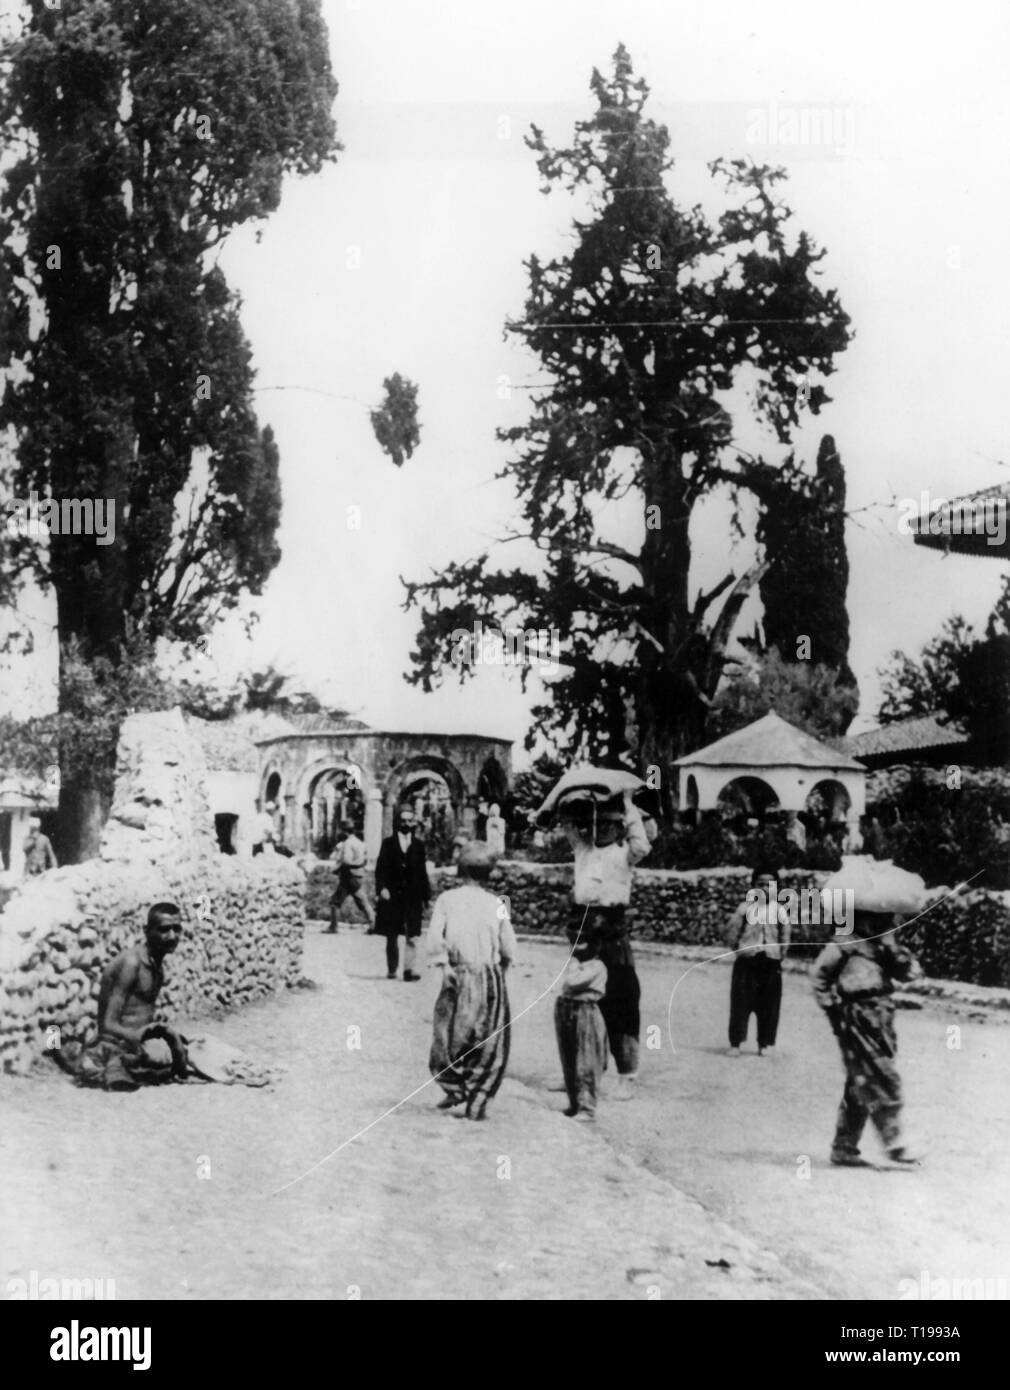 geography / travel historic, Albania, cities and communities, Tirana, street, street scene, 1930s, Additional-Rights-Clearance-Info-Not-Available - Stock Image